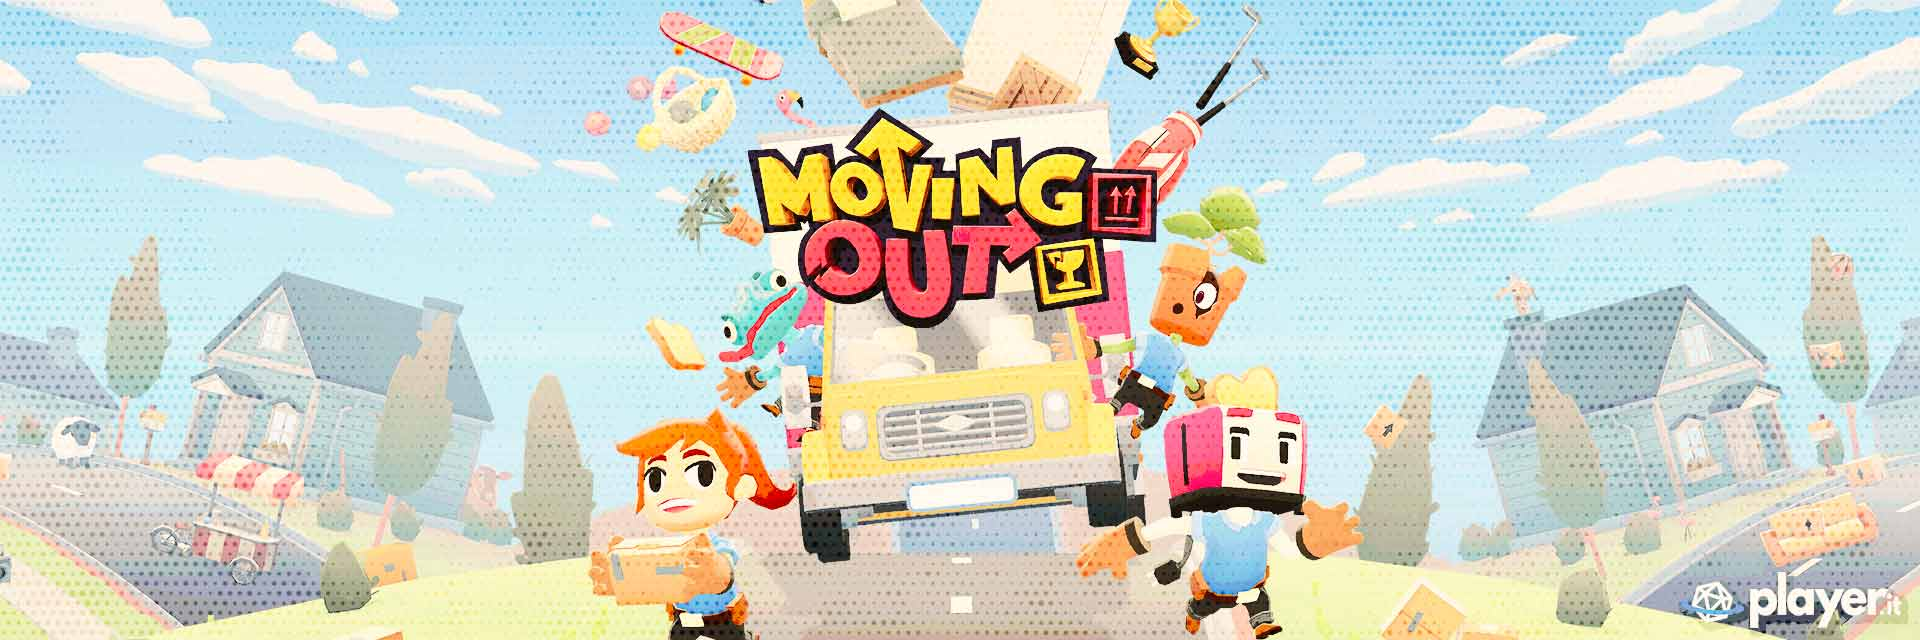 moving out wallpaper in hd